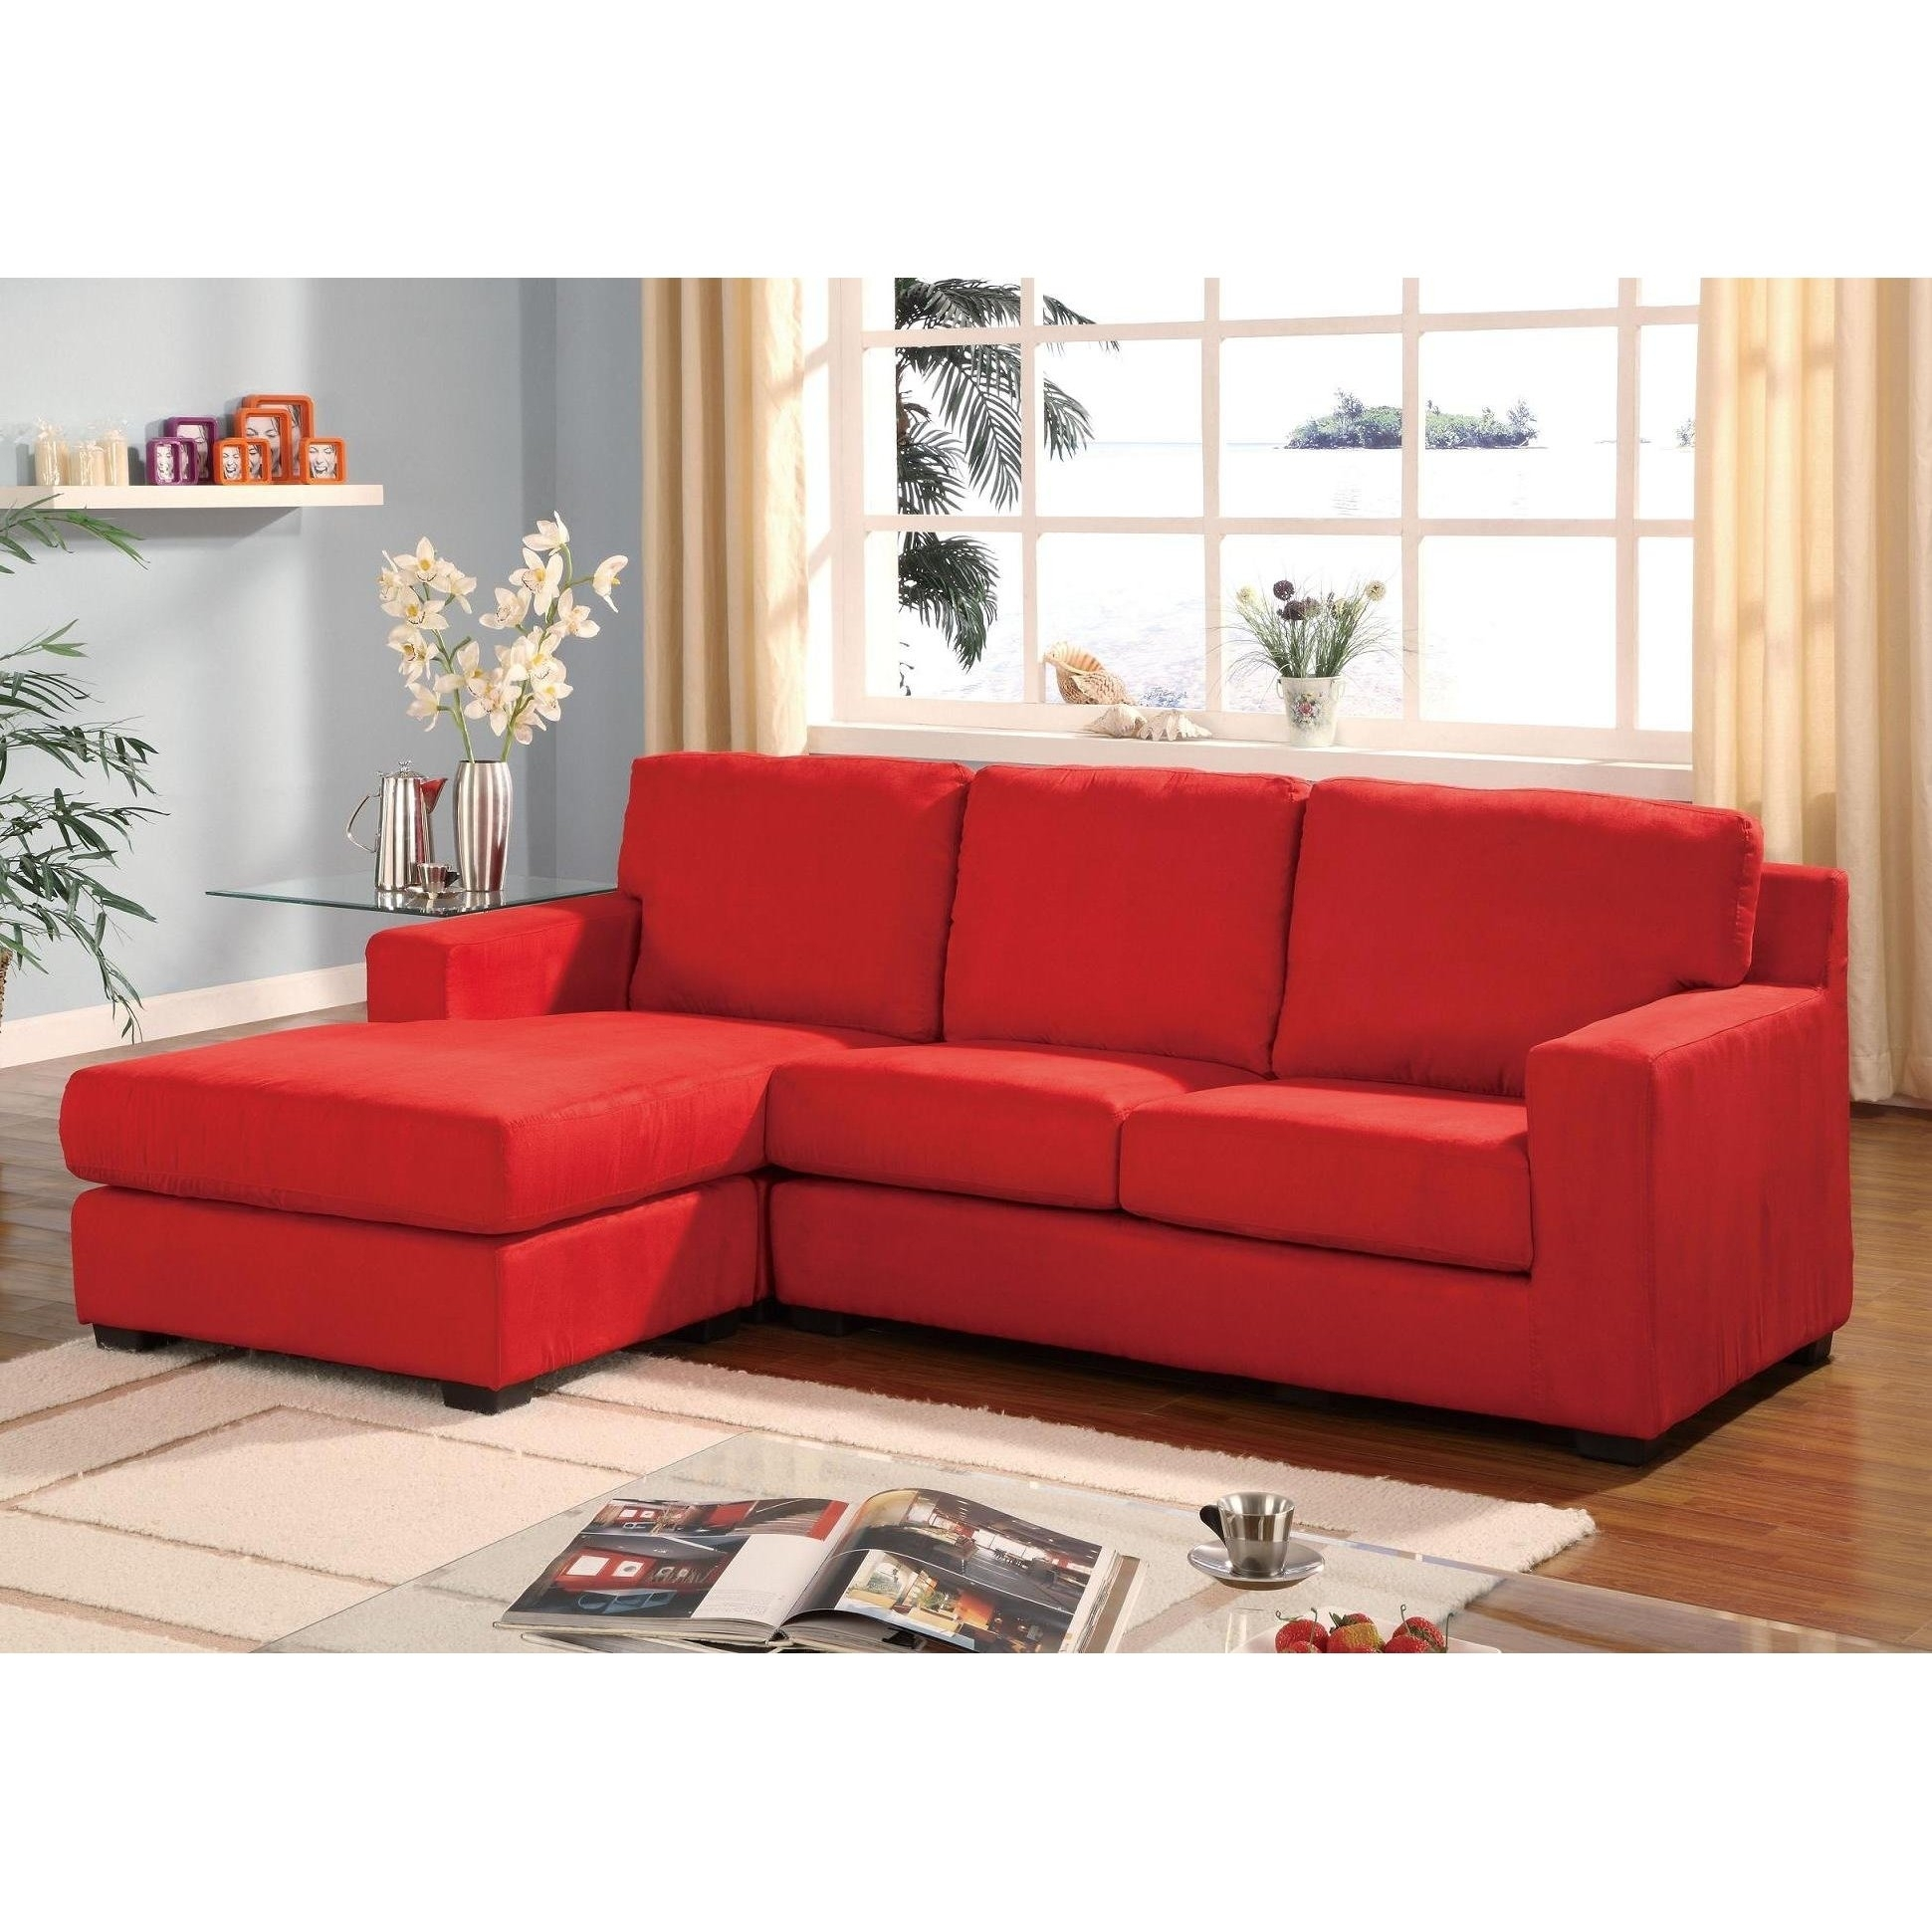 Sofas: Red Sectional Sofa | Reclining Sectional Sofas For Small Within Red Leather Sectionals With Chaise (Image 7 of 10)